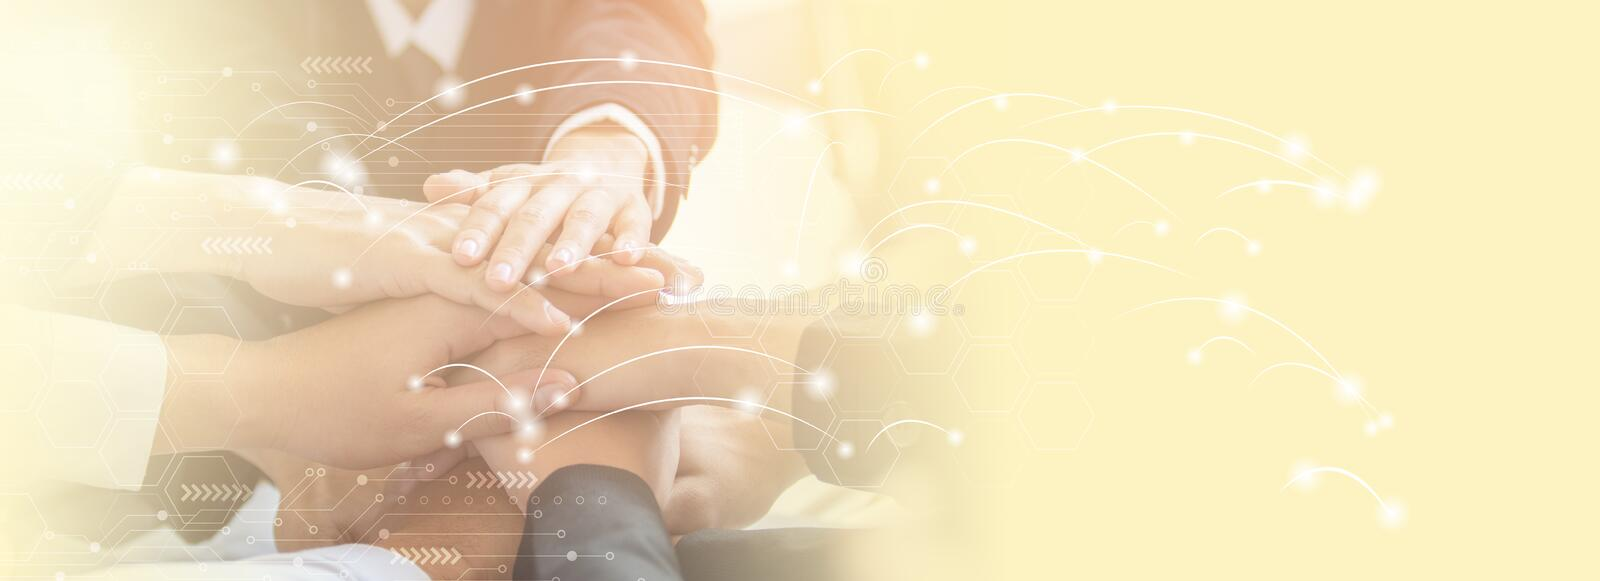 Business partnership meeting concept. Successful businessmen handshaking stock image